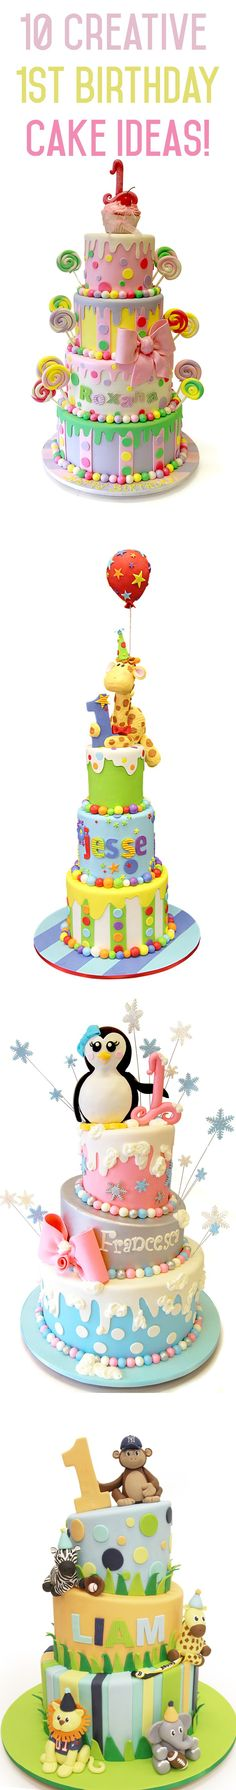 Check out our 10 creative 1st birthday cake ideas across a variety of of themes including Parisian, animal, cars, trucks, winter wonderland & more!